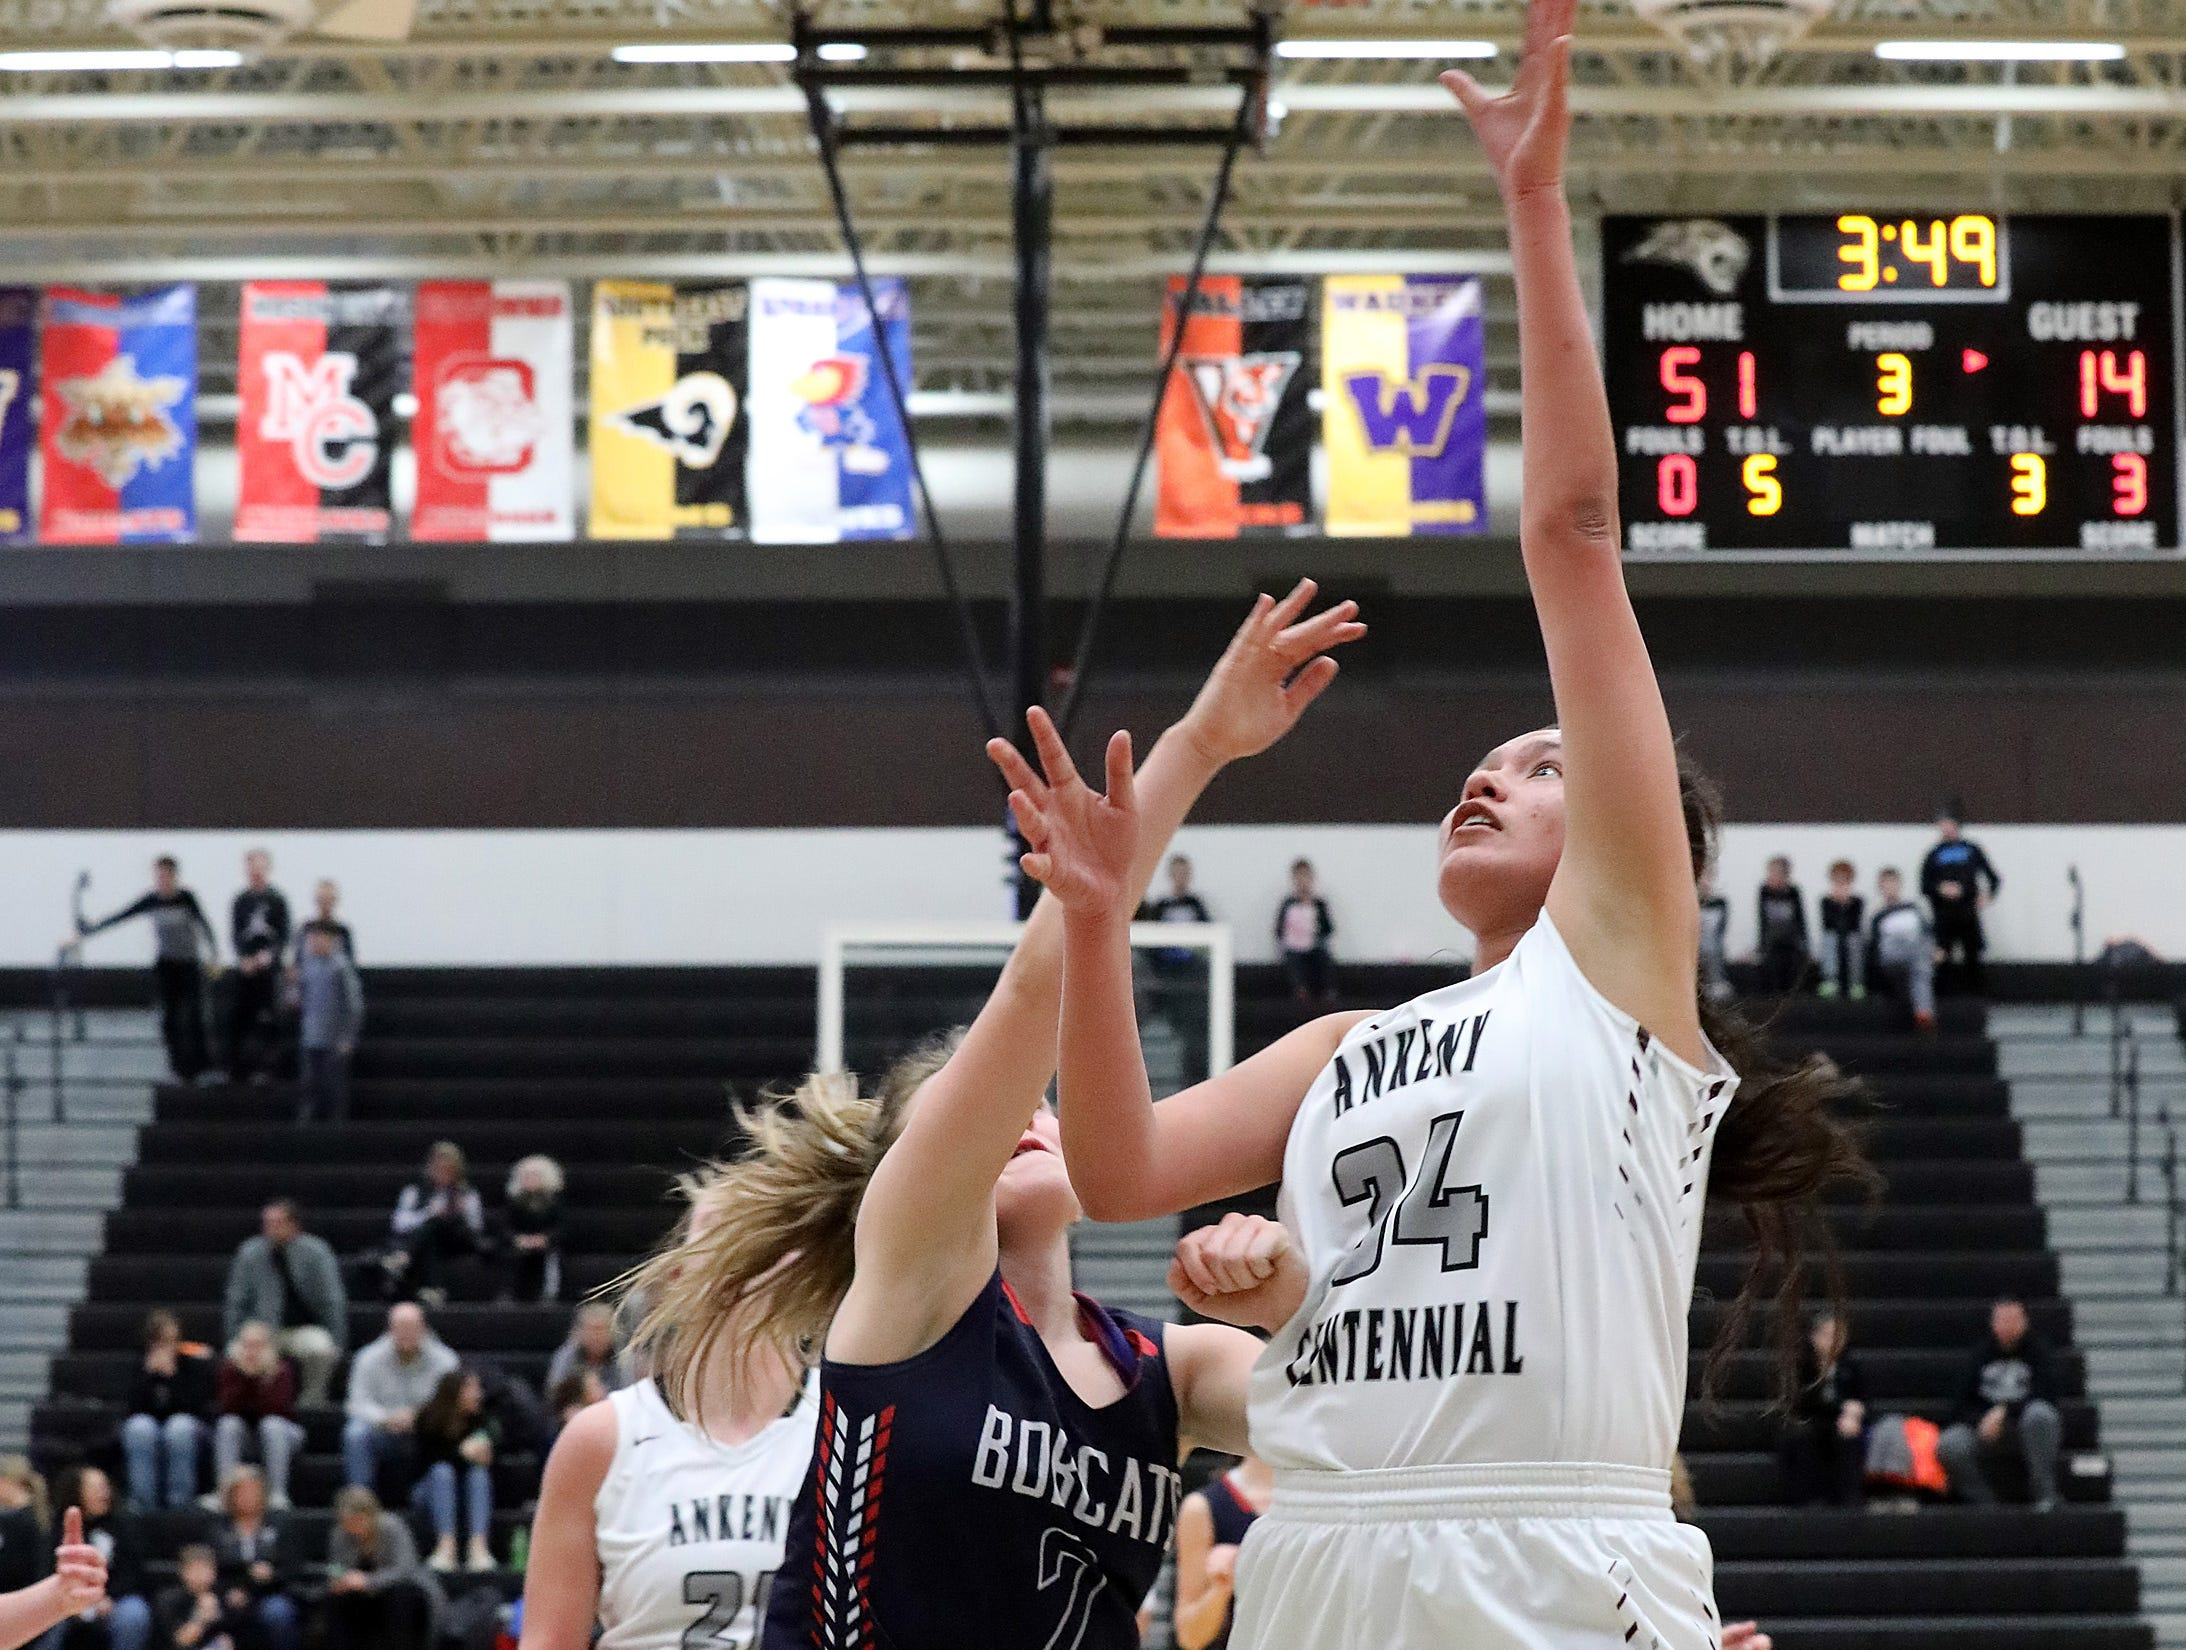 Ankeny Centennial junior Alexandria Keahna-Harris scores two points on the lay-up as the Marshalltown Bobcats compete against the Ankeny Centennial Jaguars in high school girls basketball on Tuesday, Jan. 8, 2019 at Ankeny Centennial High School.